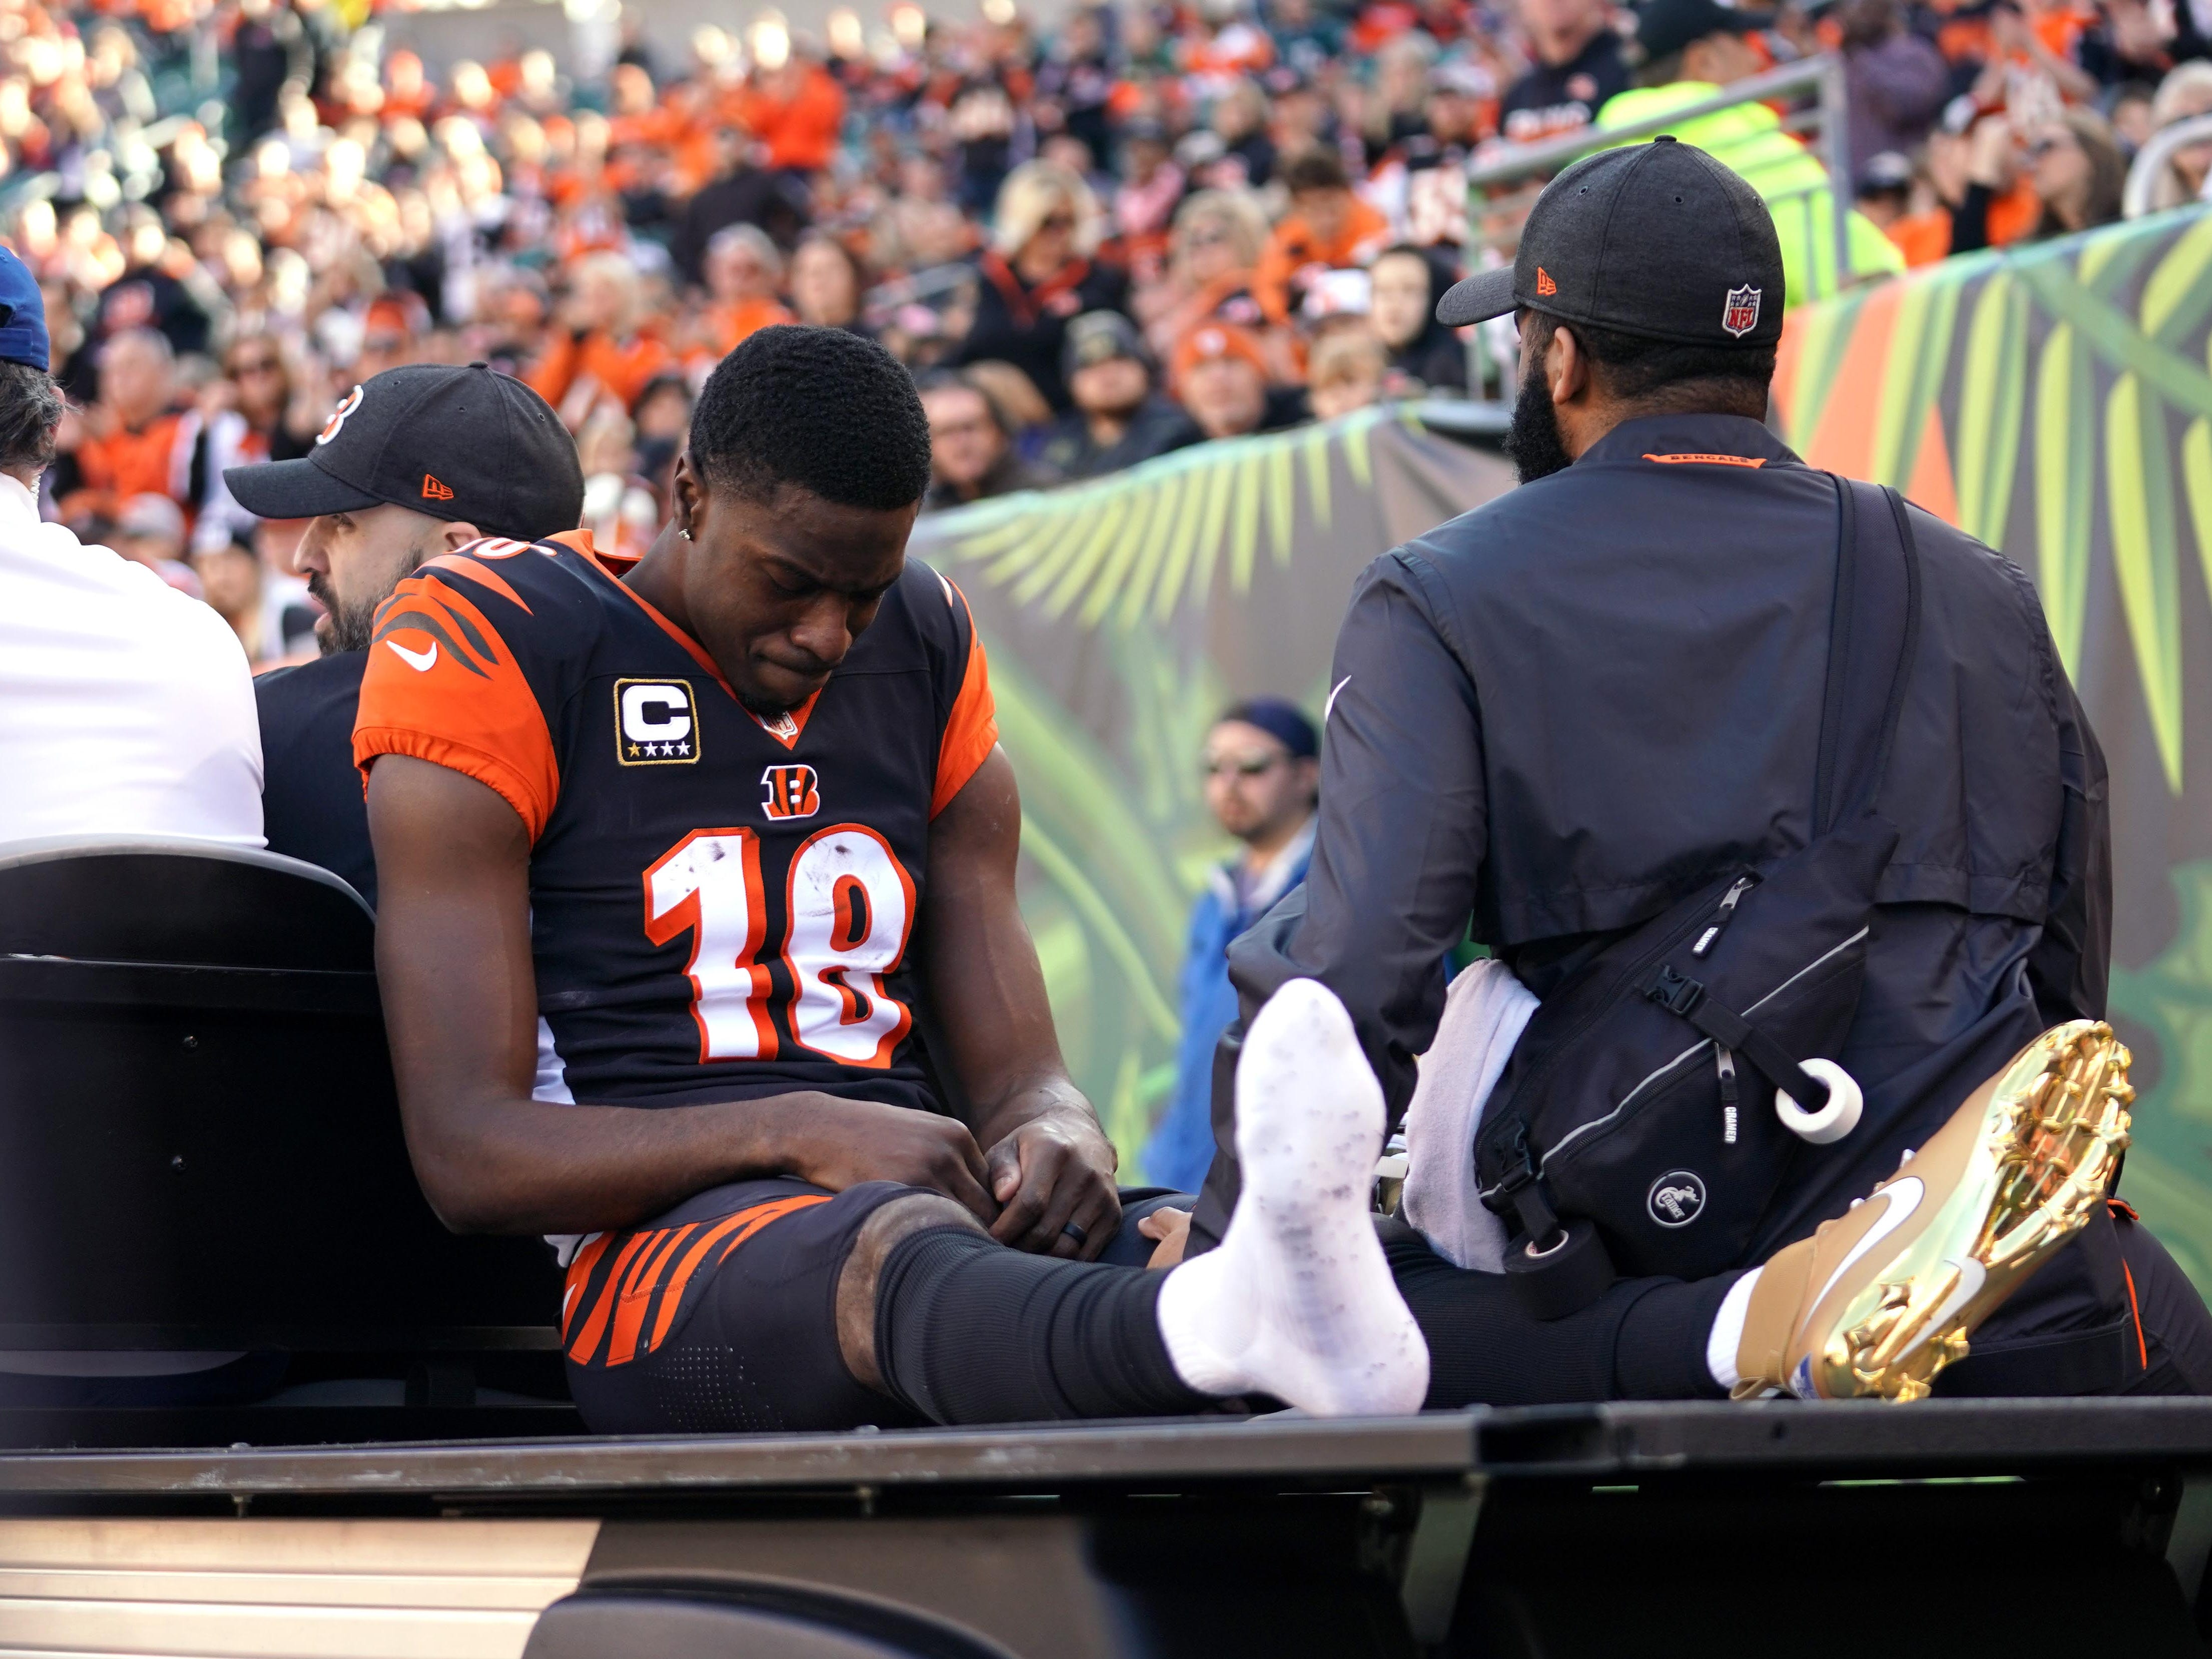 A.J. Green, WR, Cincinnati Bengals (toe injury, out for season)